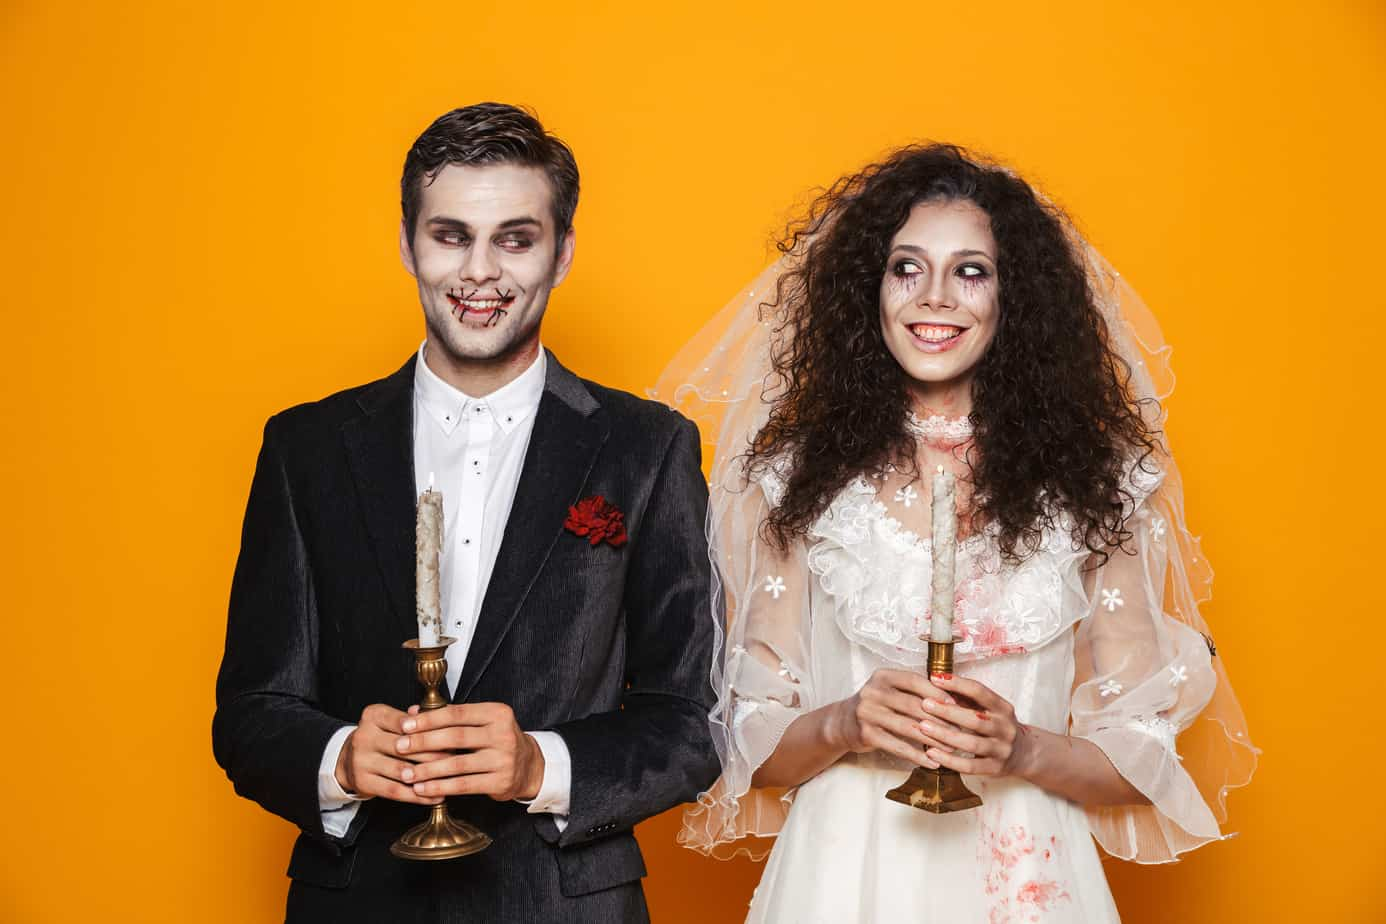 couples halloween costumes header image - photo of spooky bride and groom halloween couple in front of bright orange wall